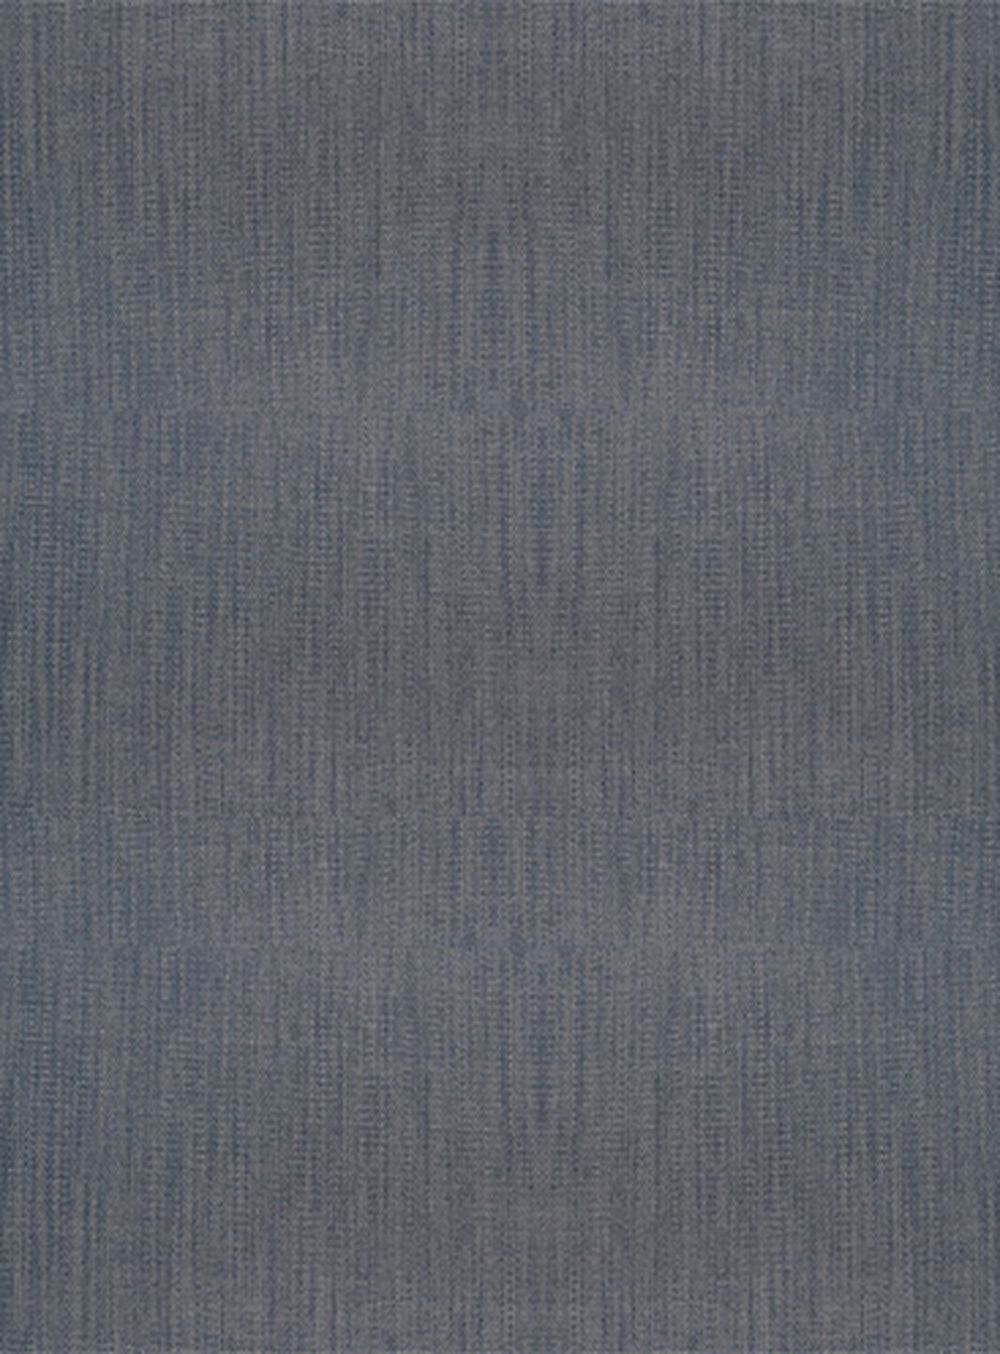 Photo of the fabric Bonny 3 Pass Blackout Abyss swatch by James Dunlop Essentials. Use for Curtains. Style of Plain